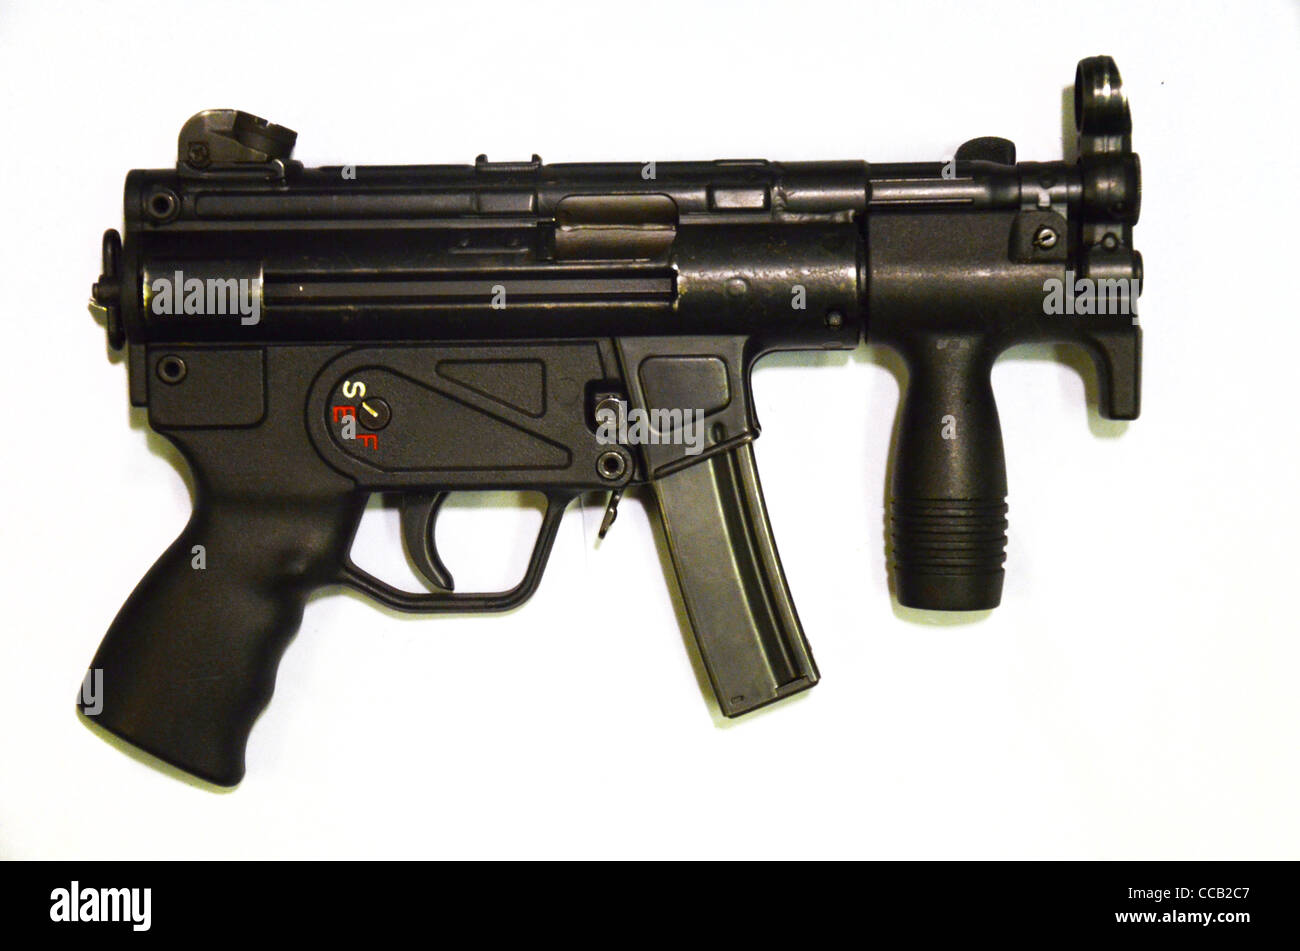 german heckler and koch m5k 9mm current submachine gun automatic